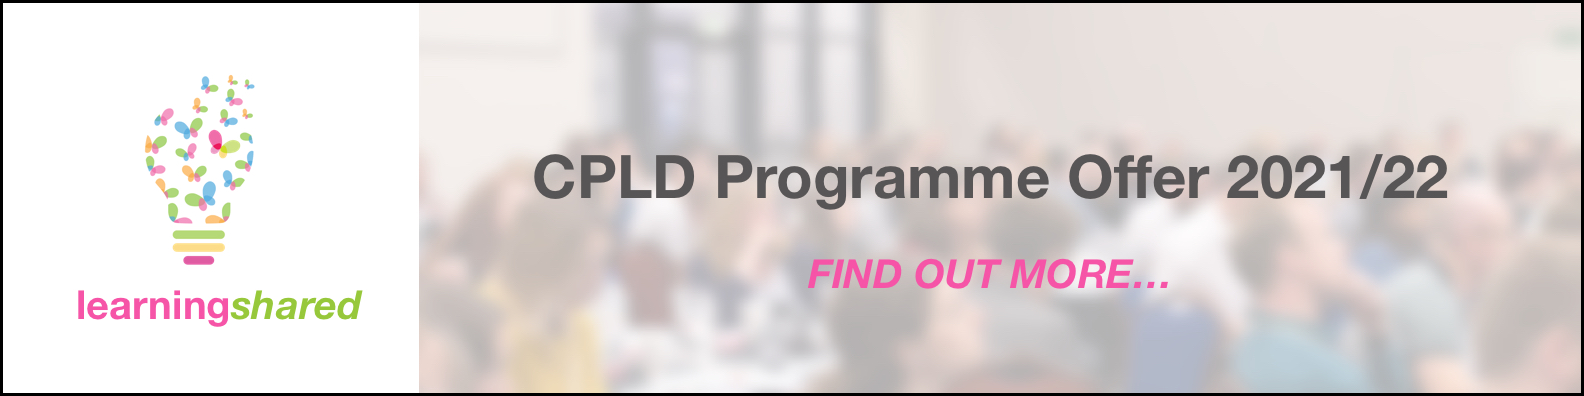 LearningShared CPLD Programme Offer 2021 to 2022